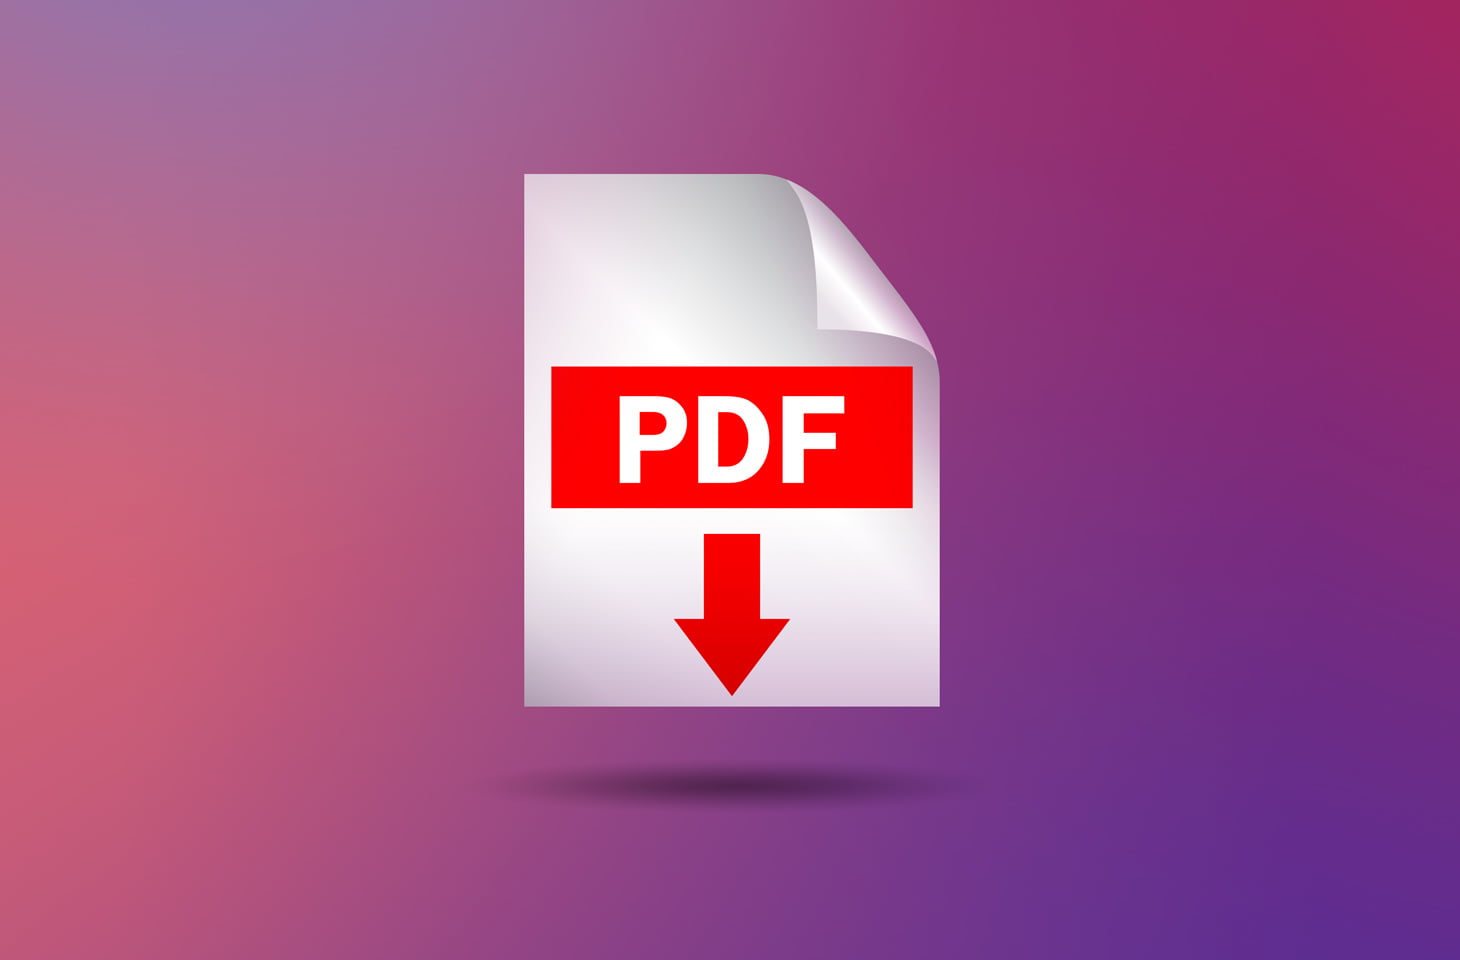 How to reduce the size of a PDF?